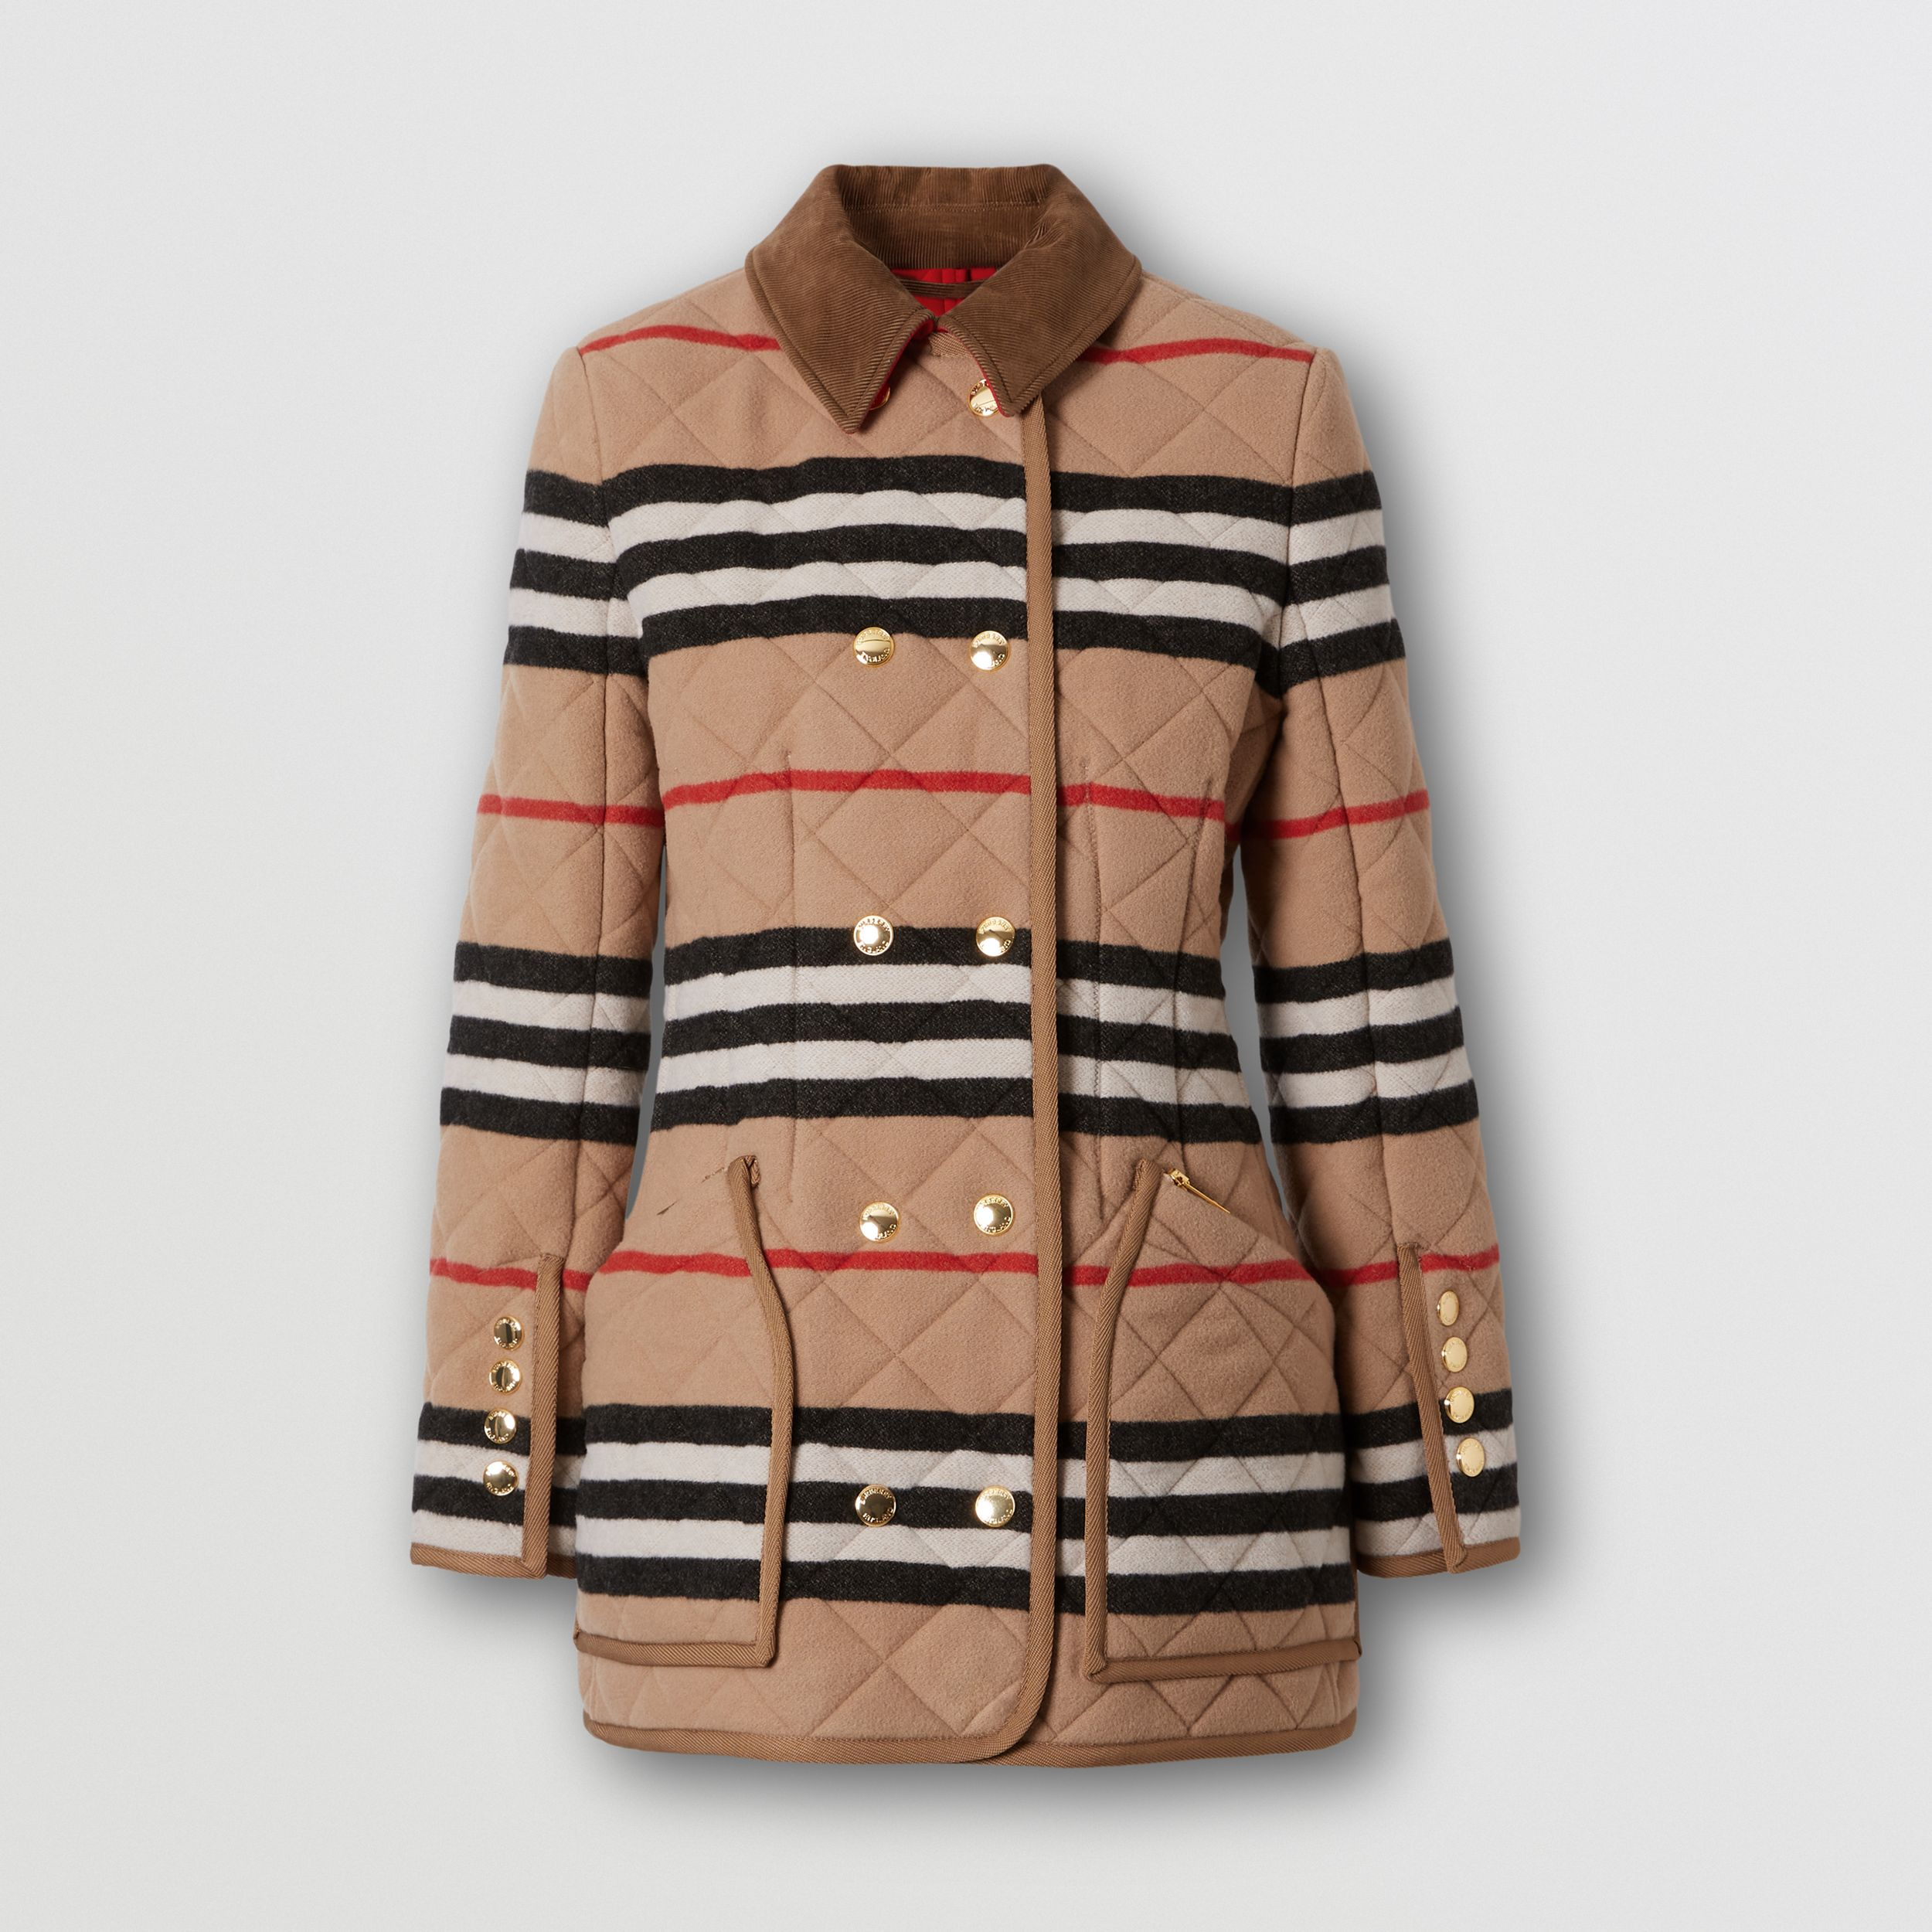 Icon Stripe Diamond Quilted Wool Riding Jacket in Light Camel - Women | Burberry - 4